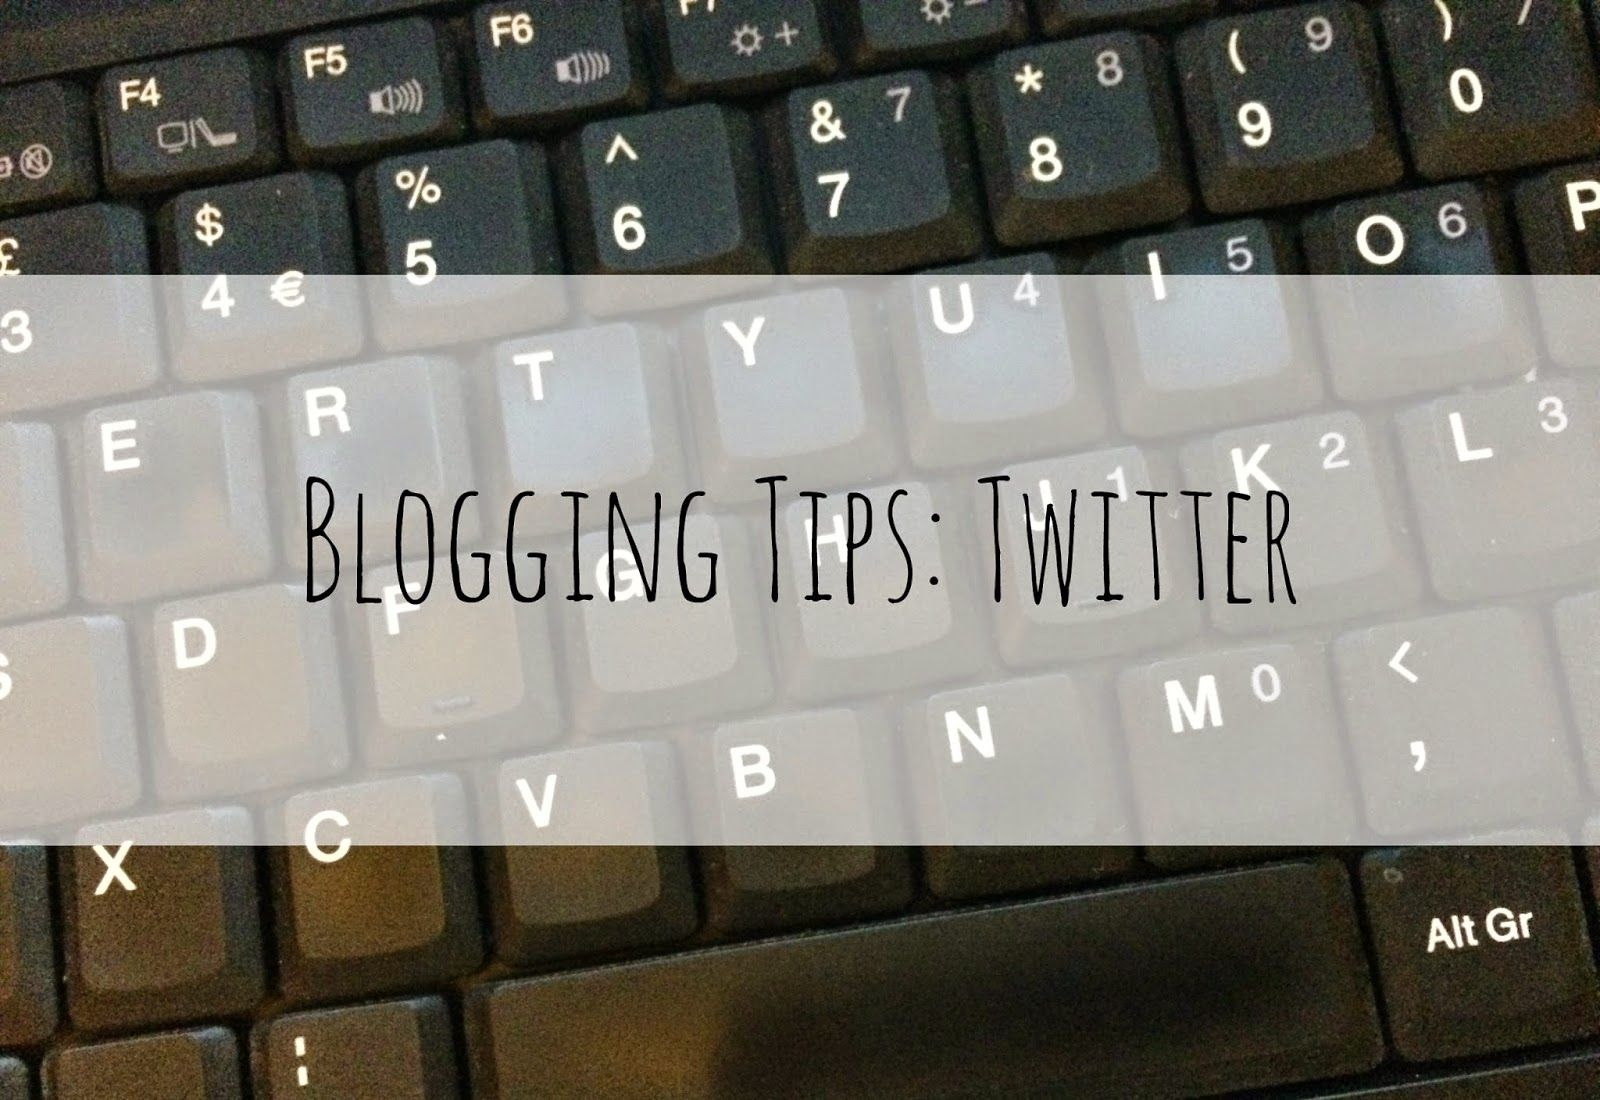 A piece of Elish: Blogging tips: Twitter